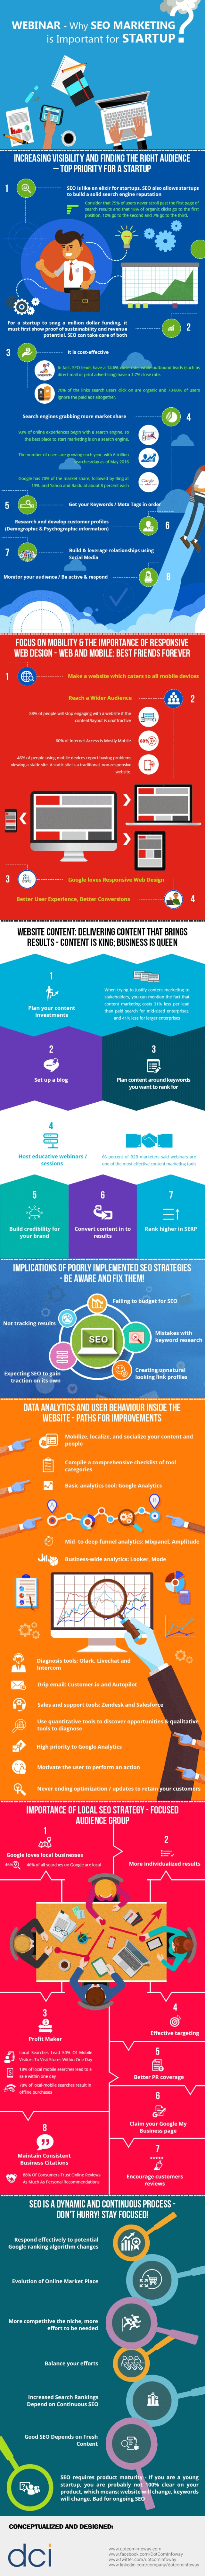 seo-for-startups-how-to-maximise-revenue-when-starting-your-business